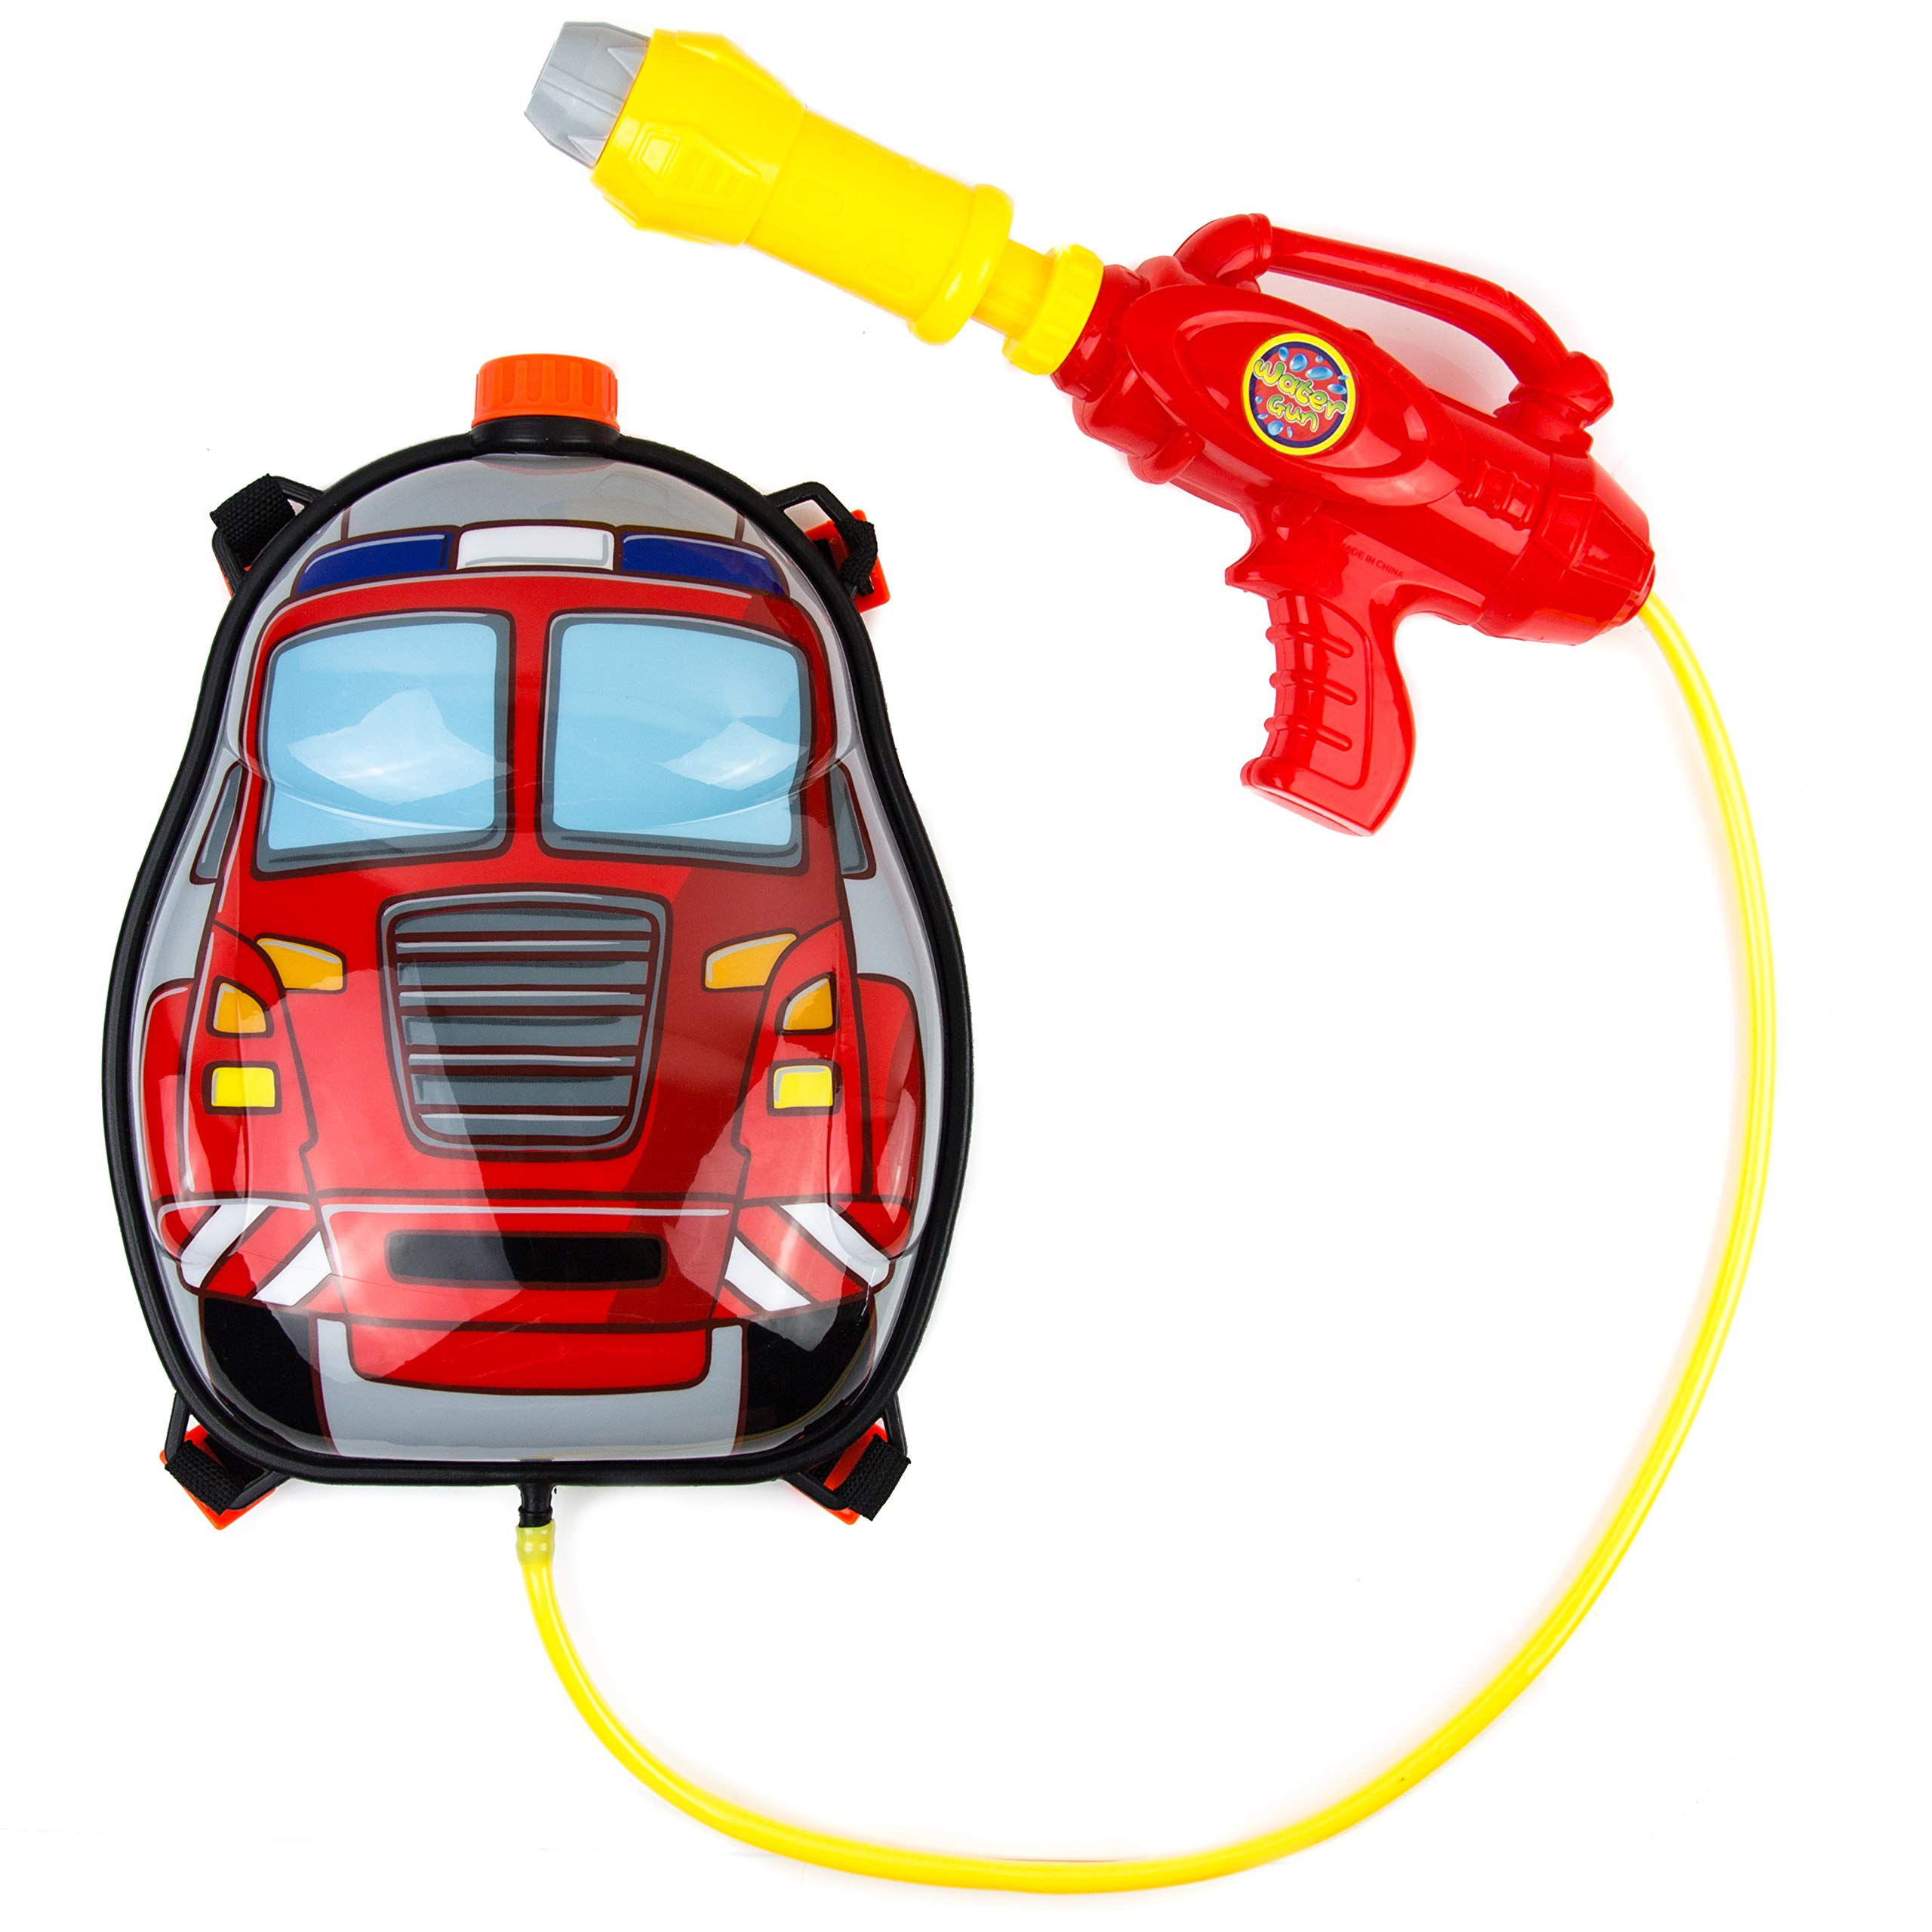 Toysery Fire Truck Backpack Water Gun | Super Cute Design | Fun Time Vacation | Safe and Durable | Great for Outdoor Play | Ultimate Fun for Kids | Ideal for Gift by Toysery